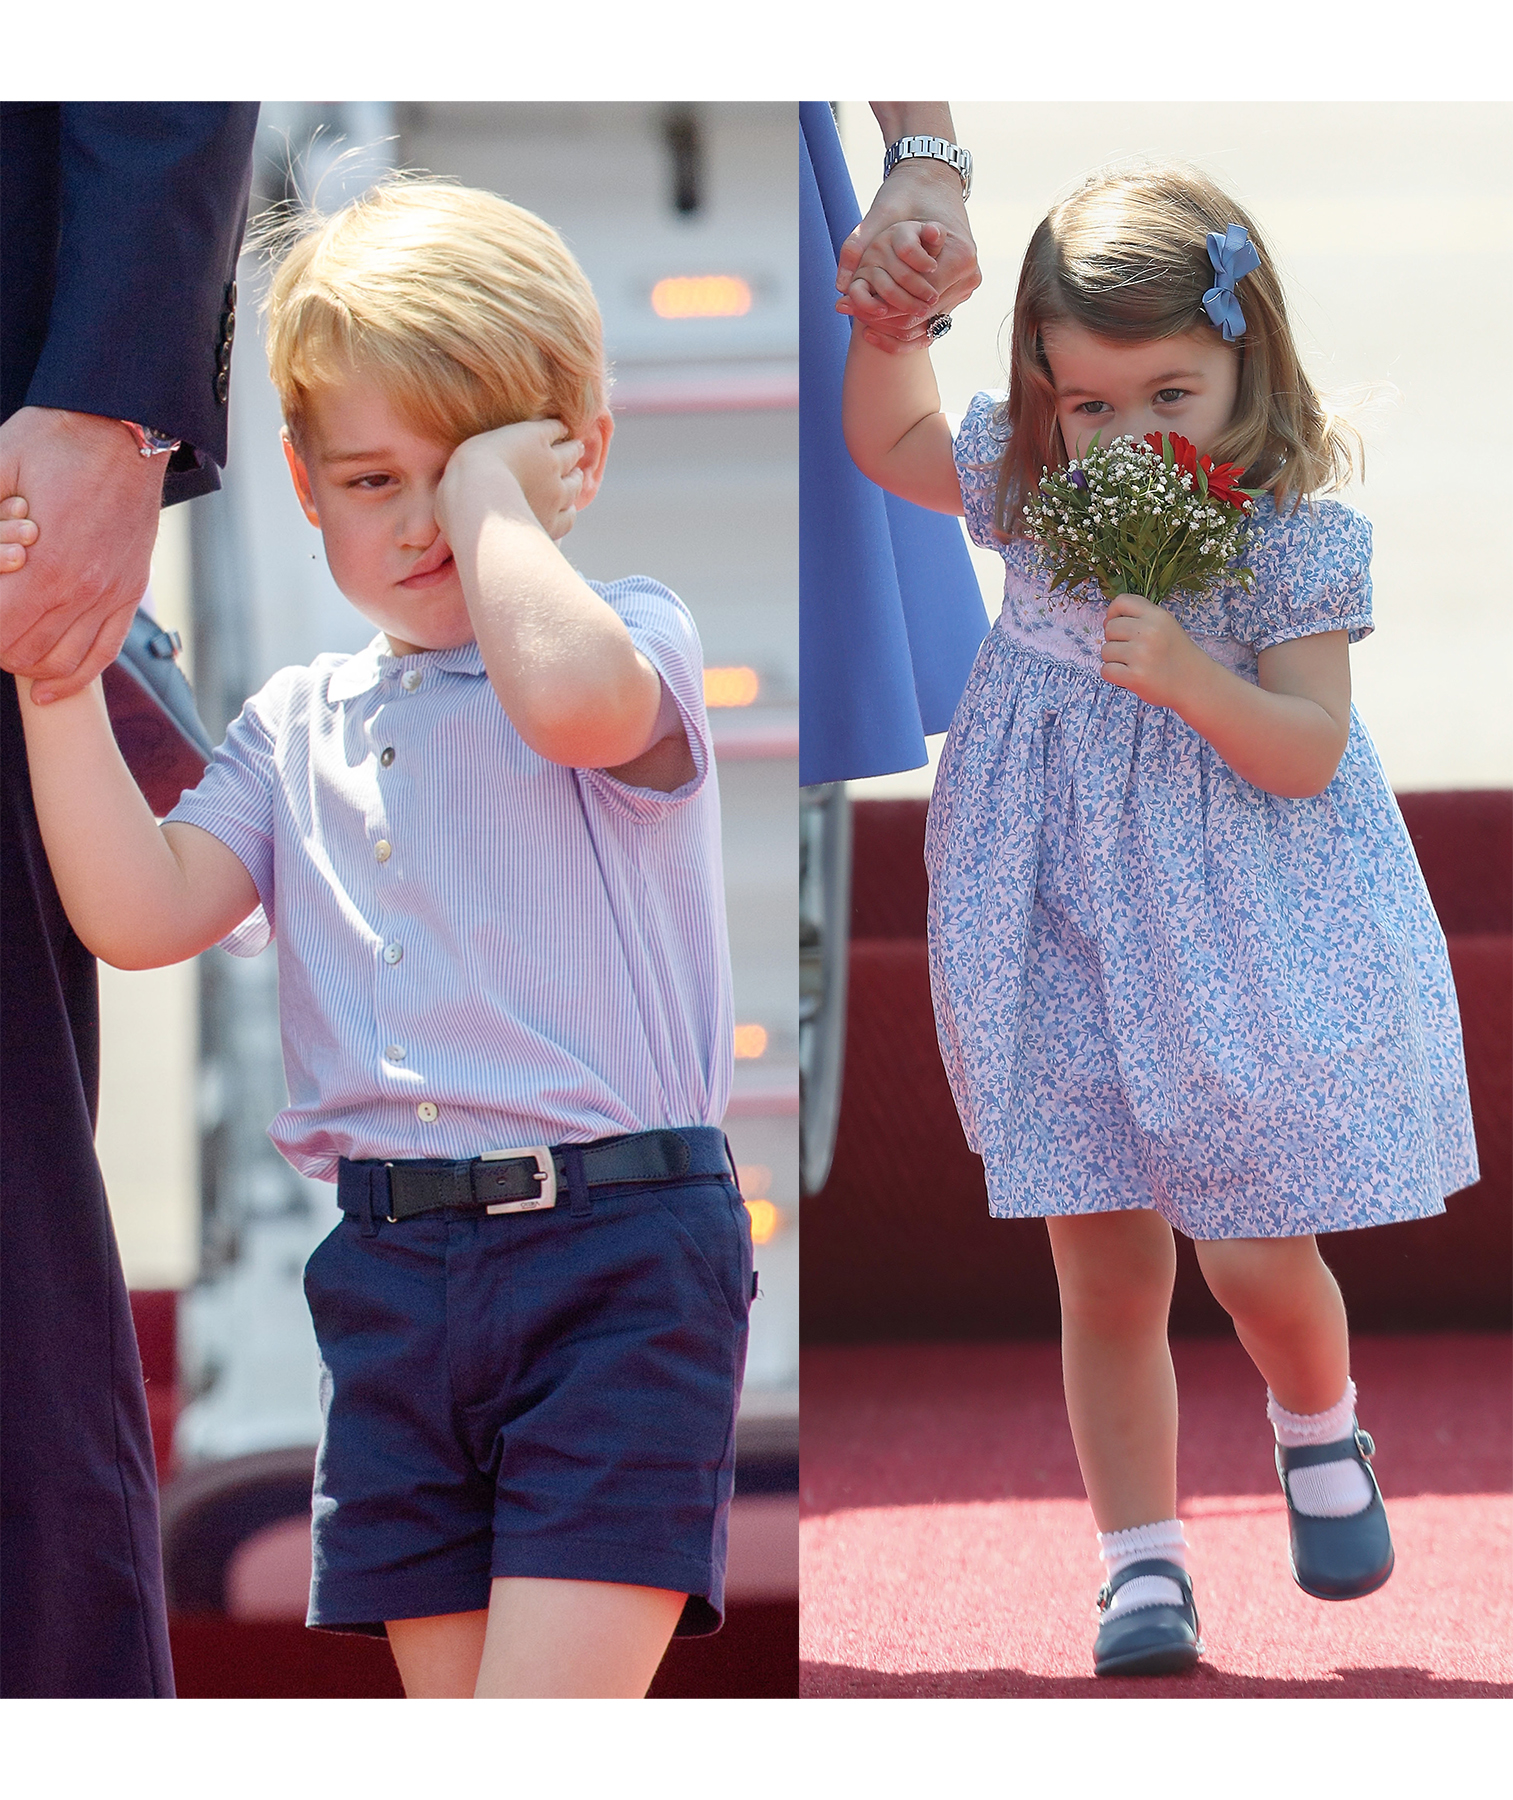 Prince George and Princess Charlotte traveling